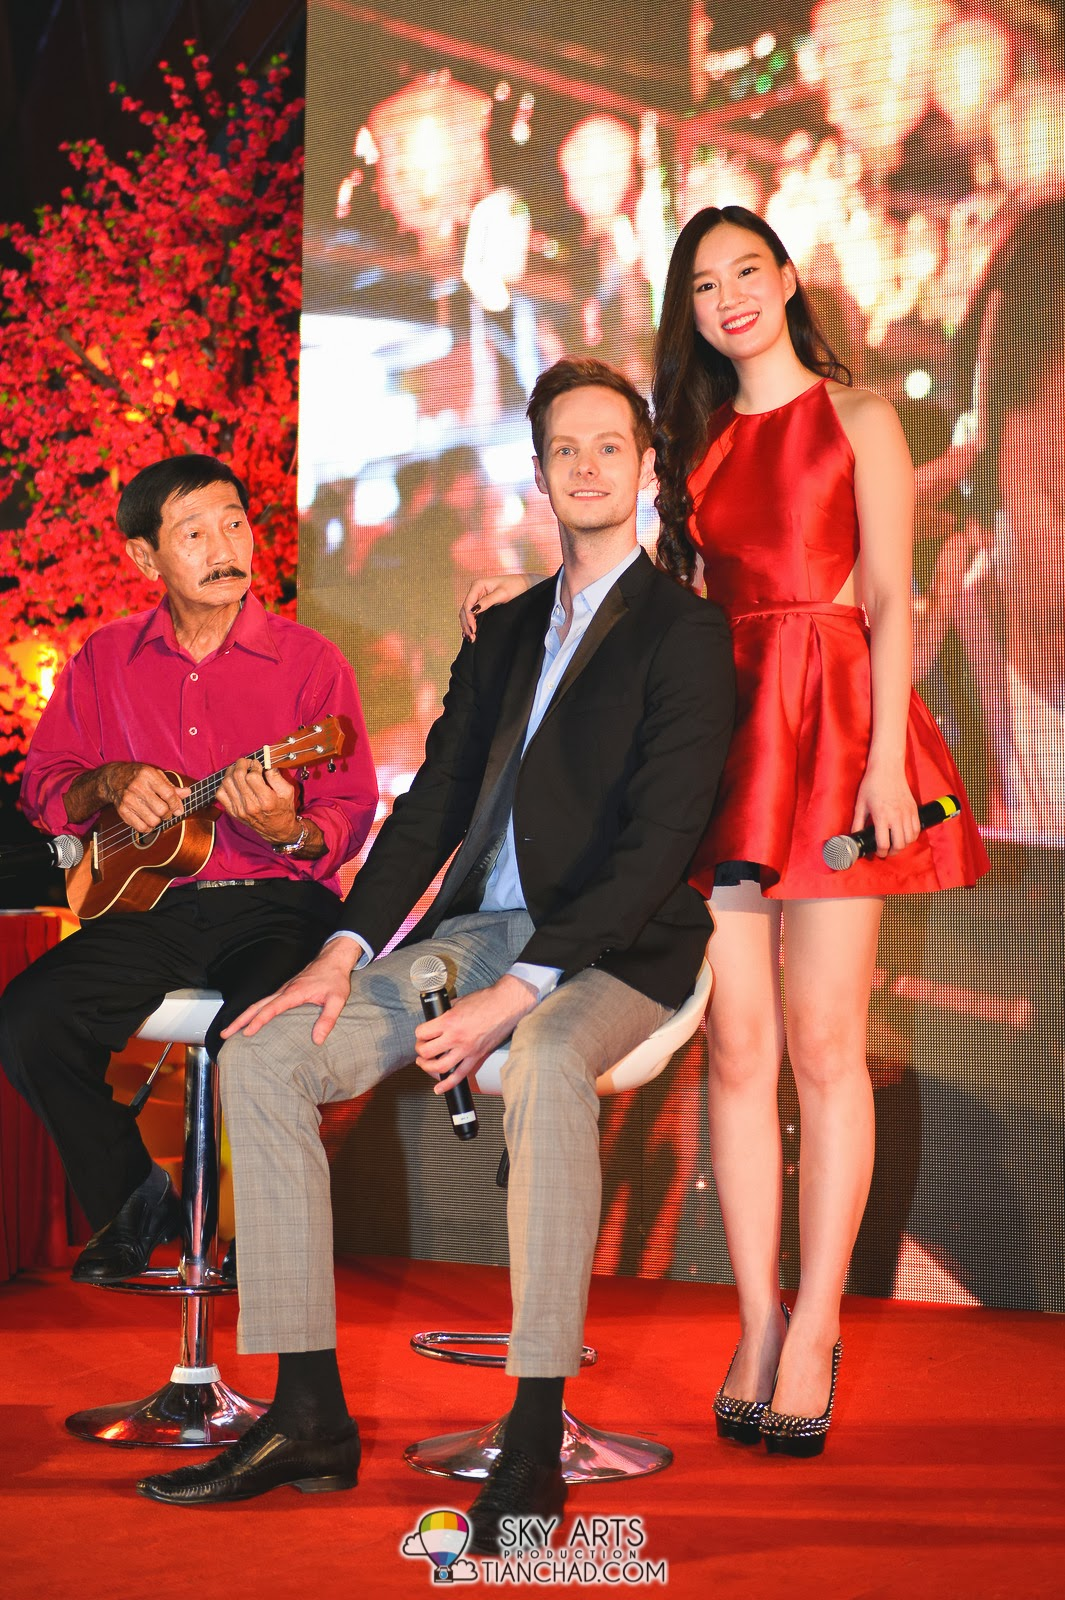 一路有你 The Journey Gala Premiere @ Paradigm Mall  Ben Andrew Pfeiffer与尤凤音在台上的合照